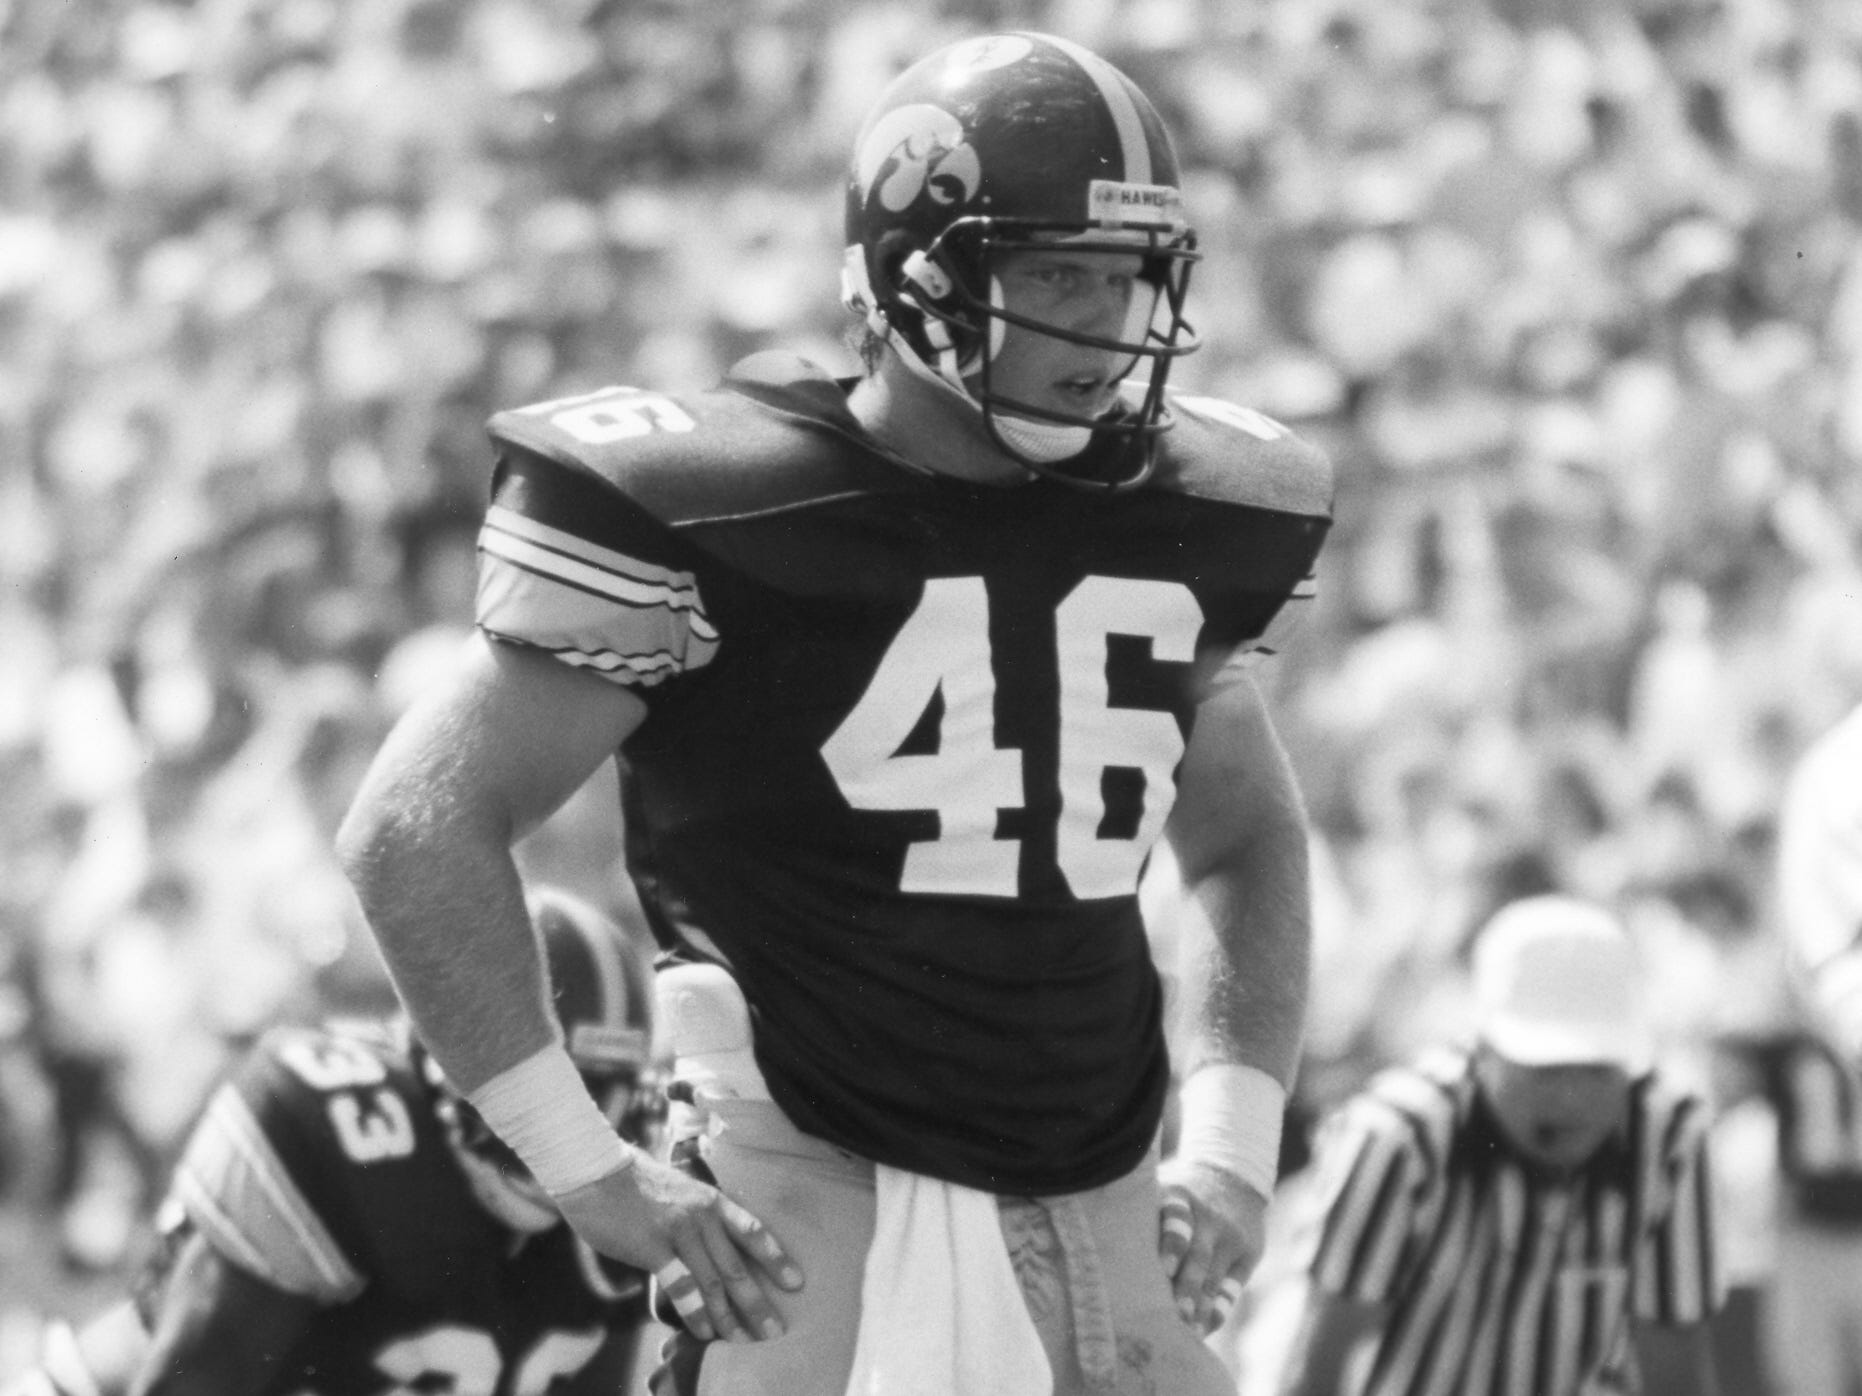 Matt Whitaker is pictured in this 1991 file photo provided by the University of Iowa.  Whitaker played tight end for the Hawkeyes from 1988-1992.  On Wednesday, Nov. 7, 2018,  Whitaker was named acting Attorney General after Attorney General Jeff Sessions resigned.